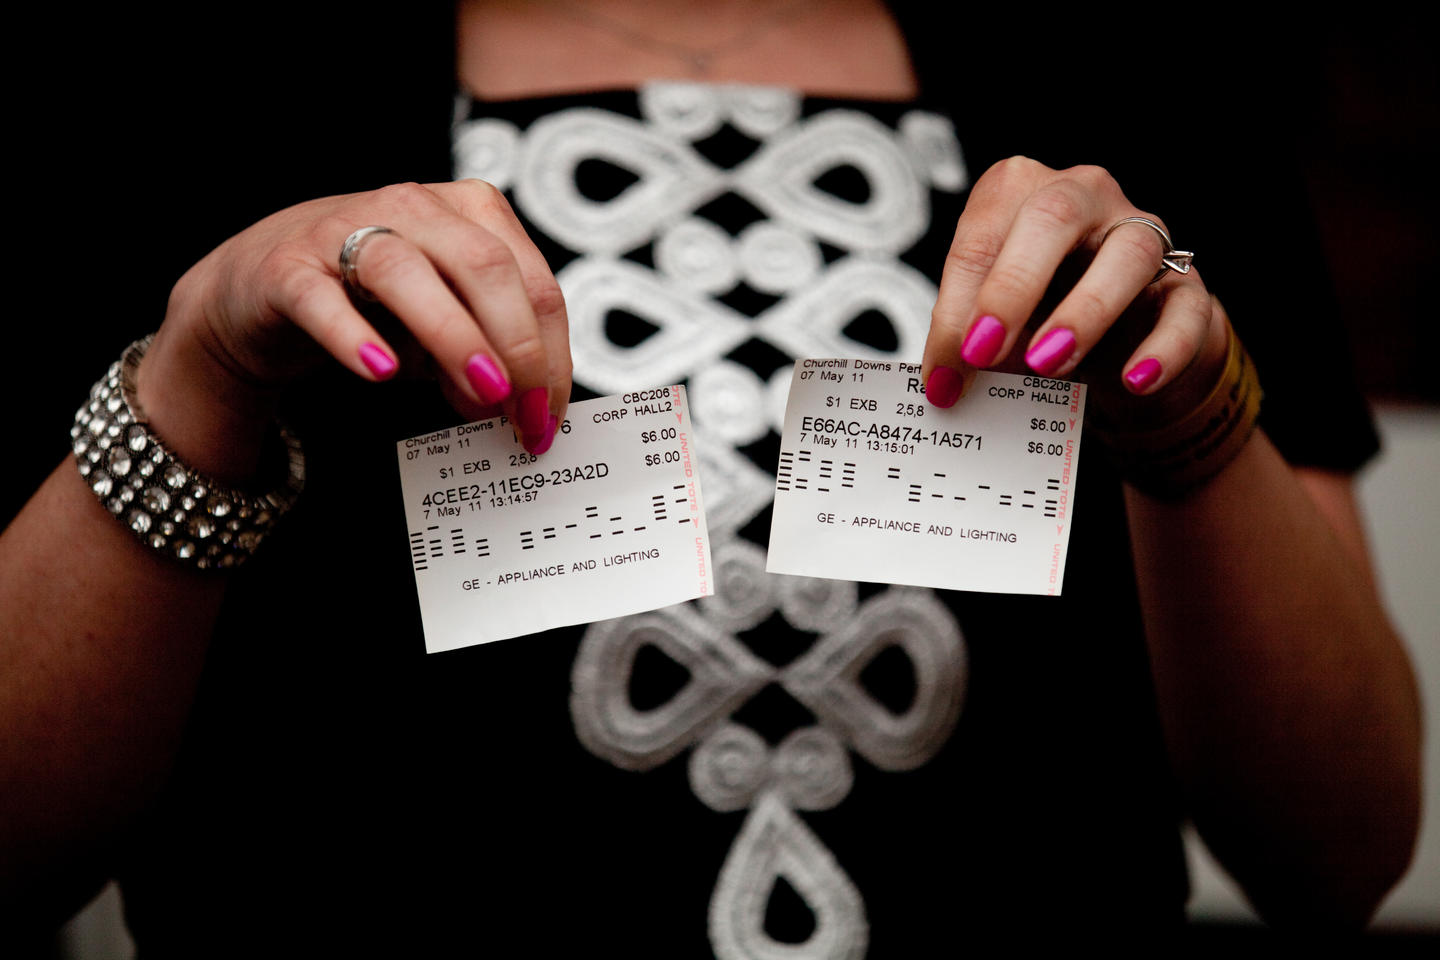 Close-up of two wagering vouchers/betting tickets